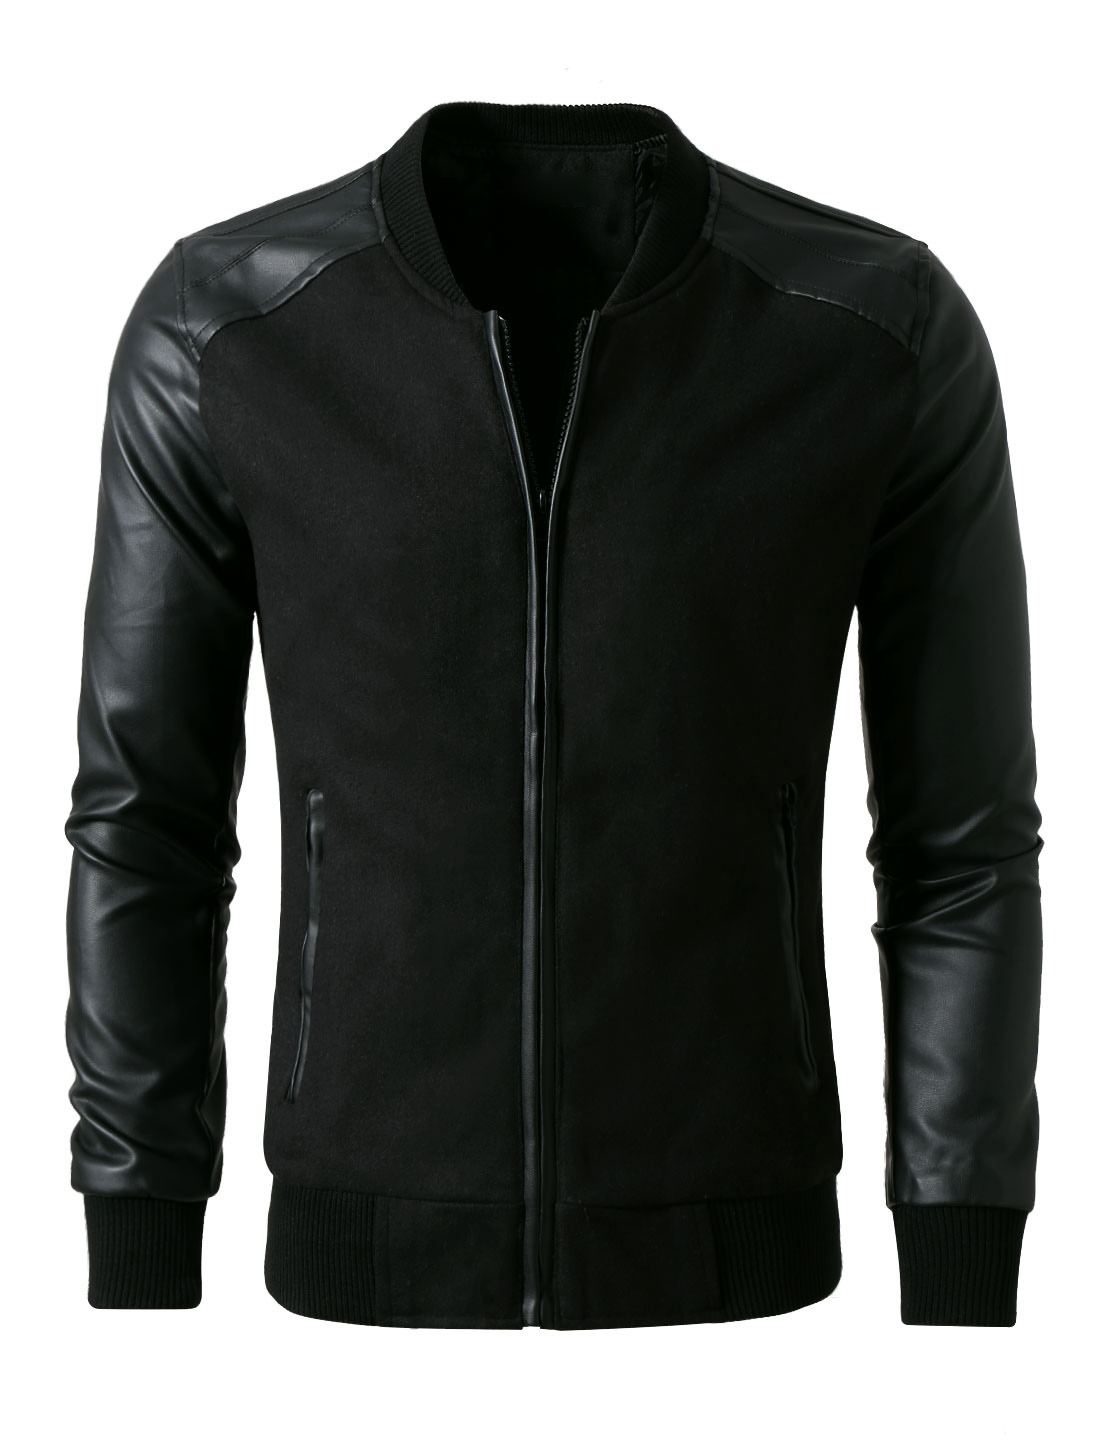 Men Fashion Rib Knit Collar Zip-Up Front Lining Jacket M